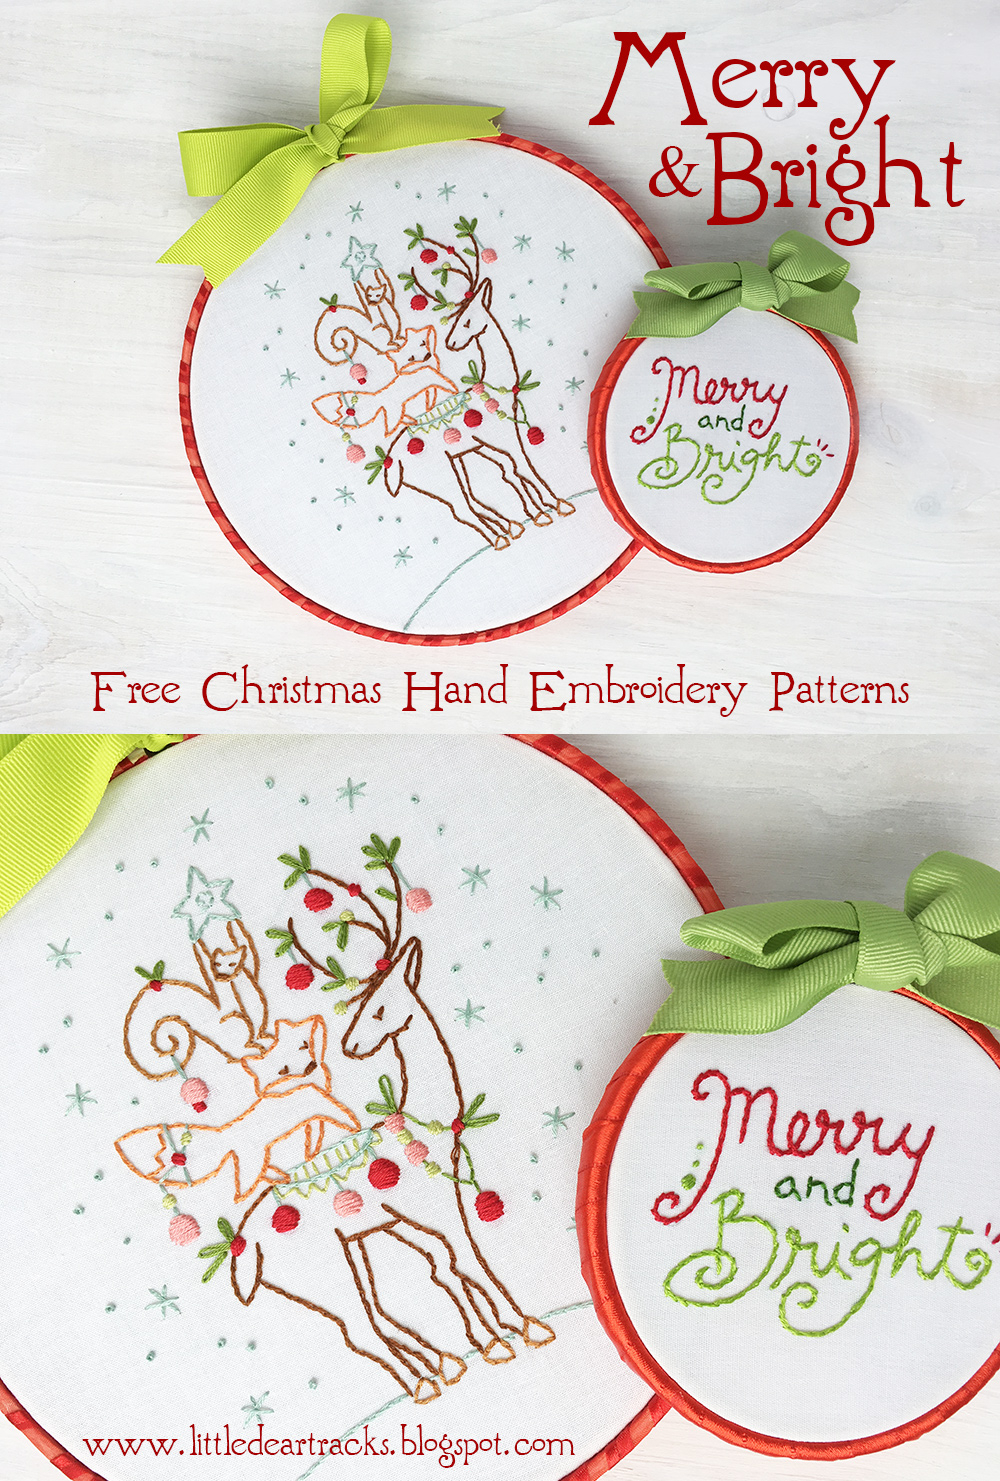 Christmas Hand Embroidery Patterns Little Dear Tracks Free Christmas Embroidery Patterns